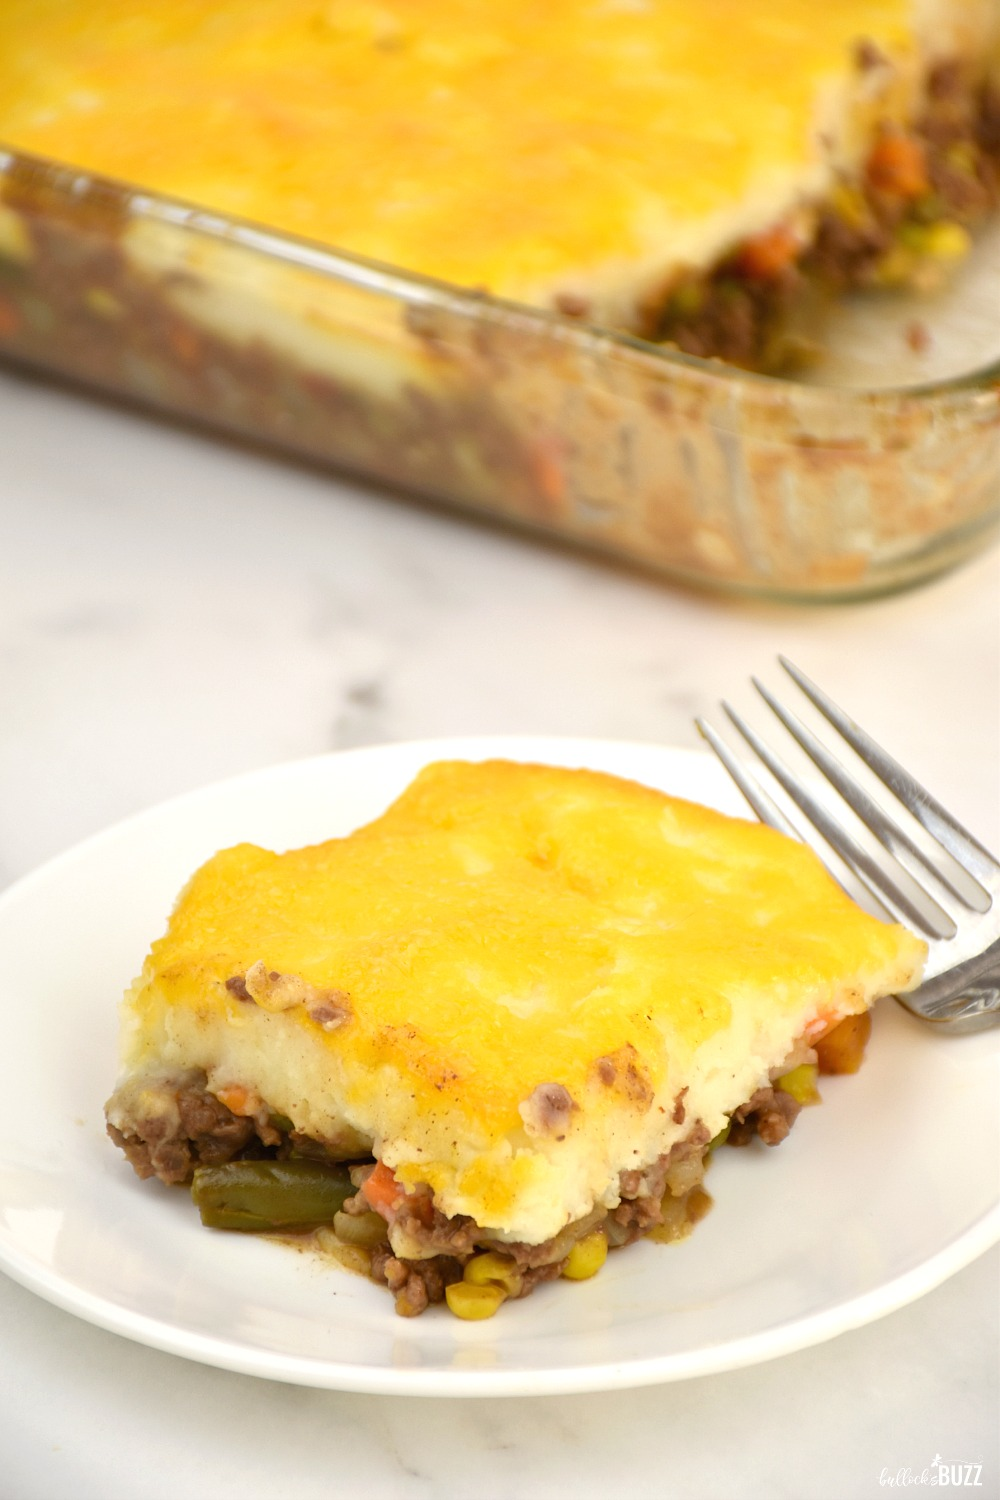 Made with seasoned ground beef, mixed vegetables, fluffy mashed potatoes and cheddar cheese, this Shepherd's Pie recipe is the ultimate comfort food.